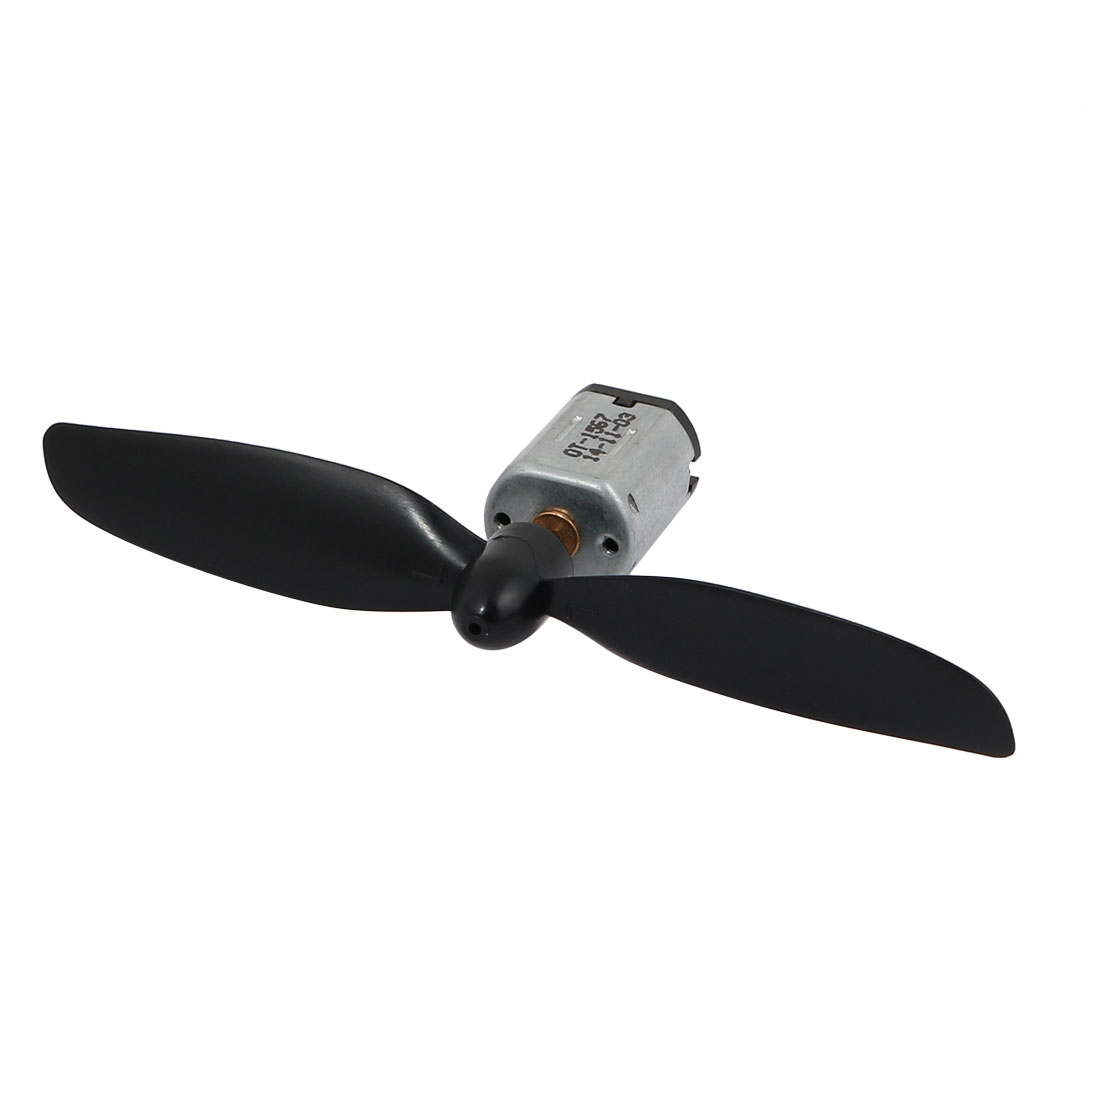 DC 3.7V 25000RPM N20 High Speed Strong Magnetic Motor with CCW Propeller